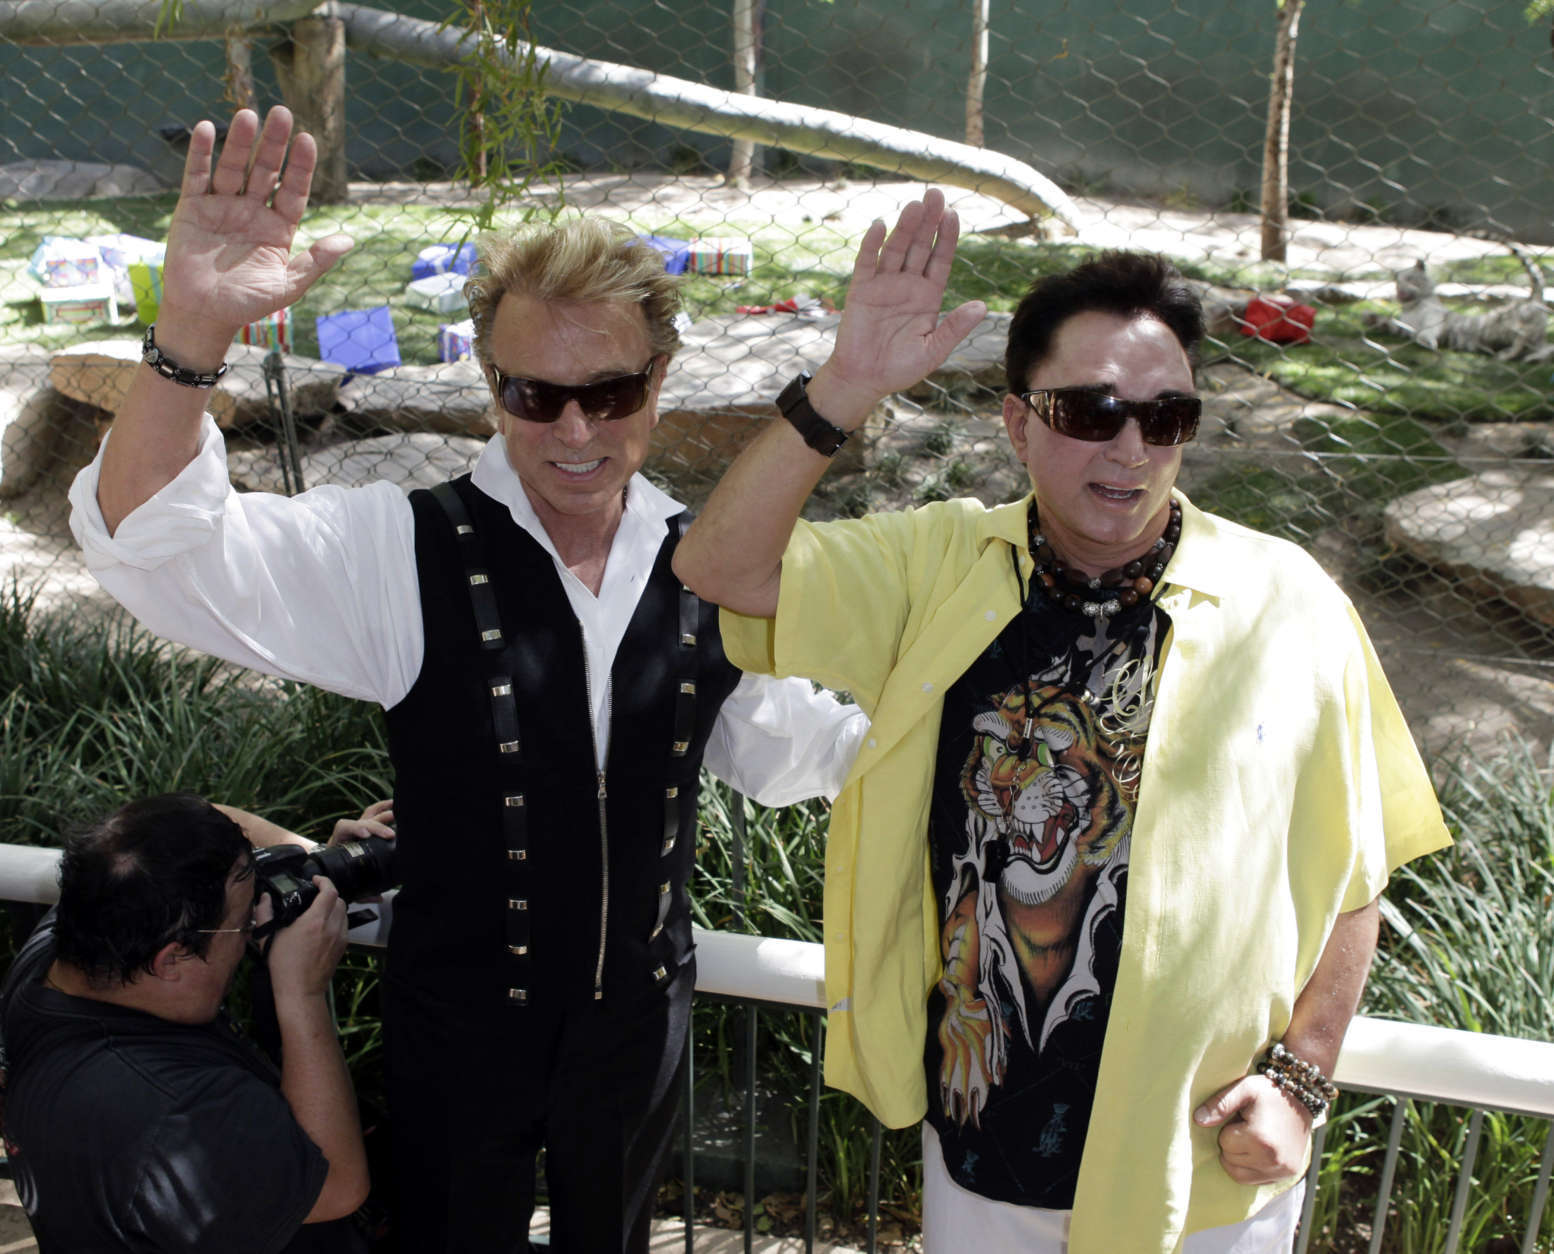 Siegfried Fischbacher, left, and Roy Horn pose for photos as they celebrate their tiger cubs' first birthday at Secret Garden & Dolphin Habitat at the Mirage hotel and casino in Las Vegas, Tuesday, May 12, 2009.  (AP Photo/Jae C. Hong)